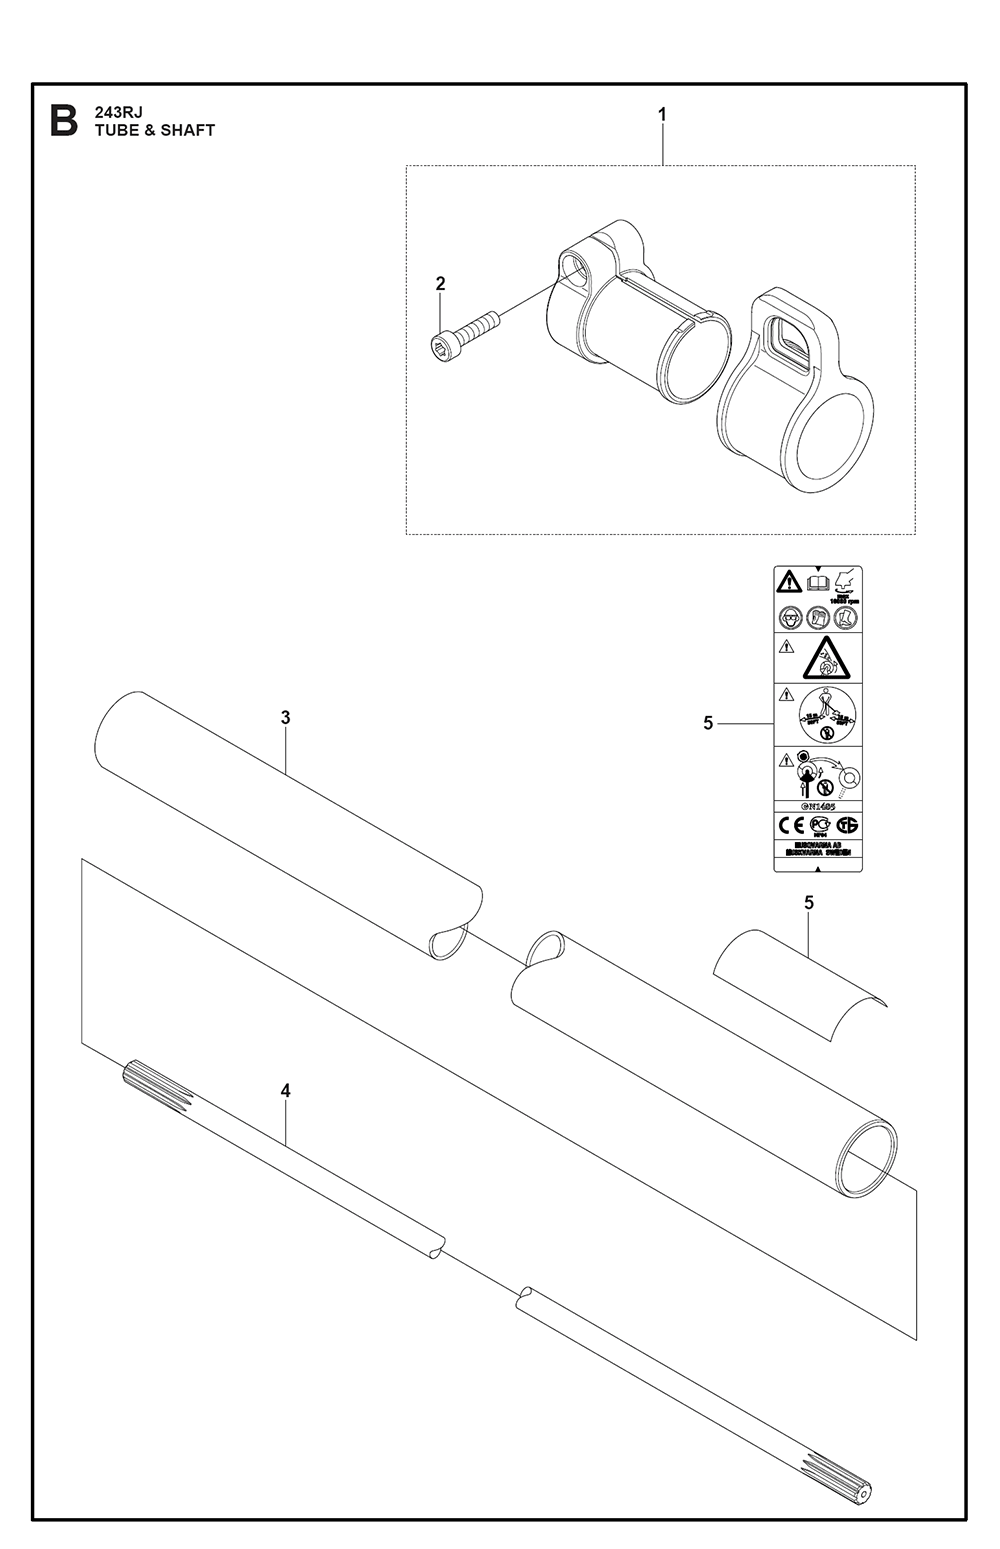 243 RJ-(25)-Husqvarna-PB-1Break Down